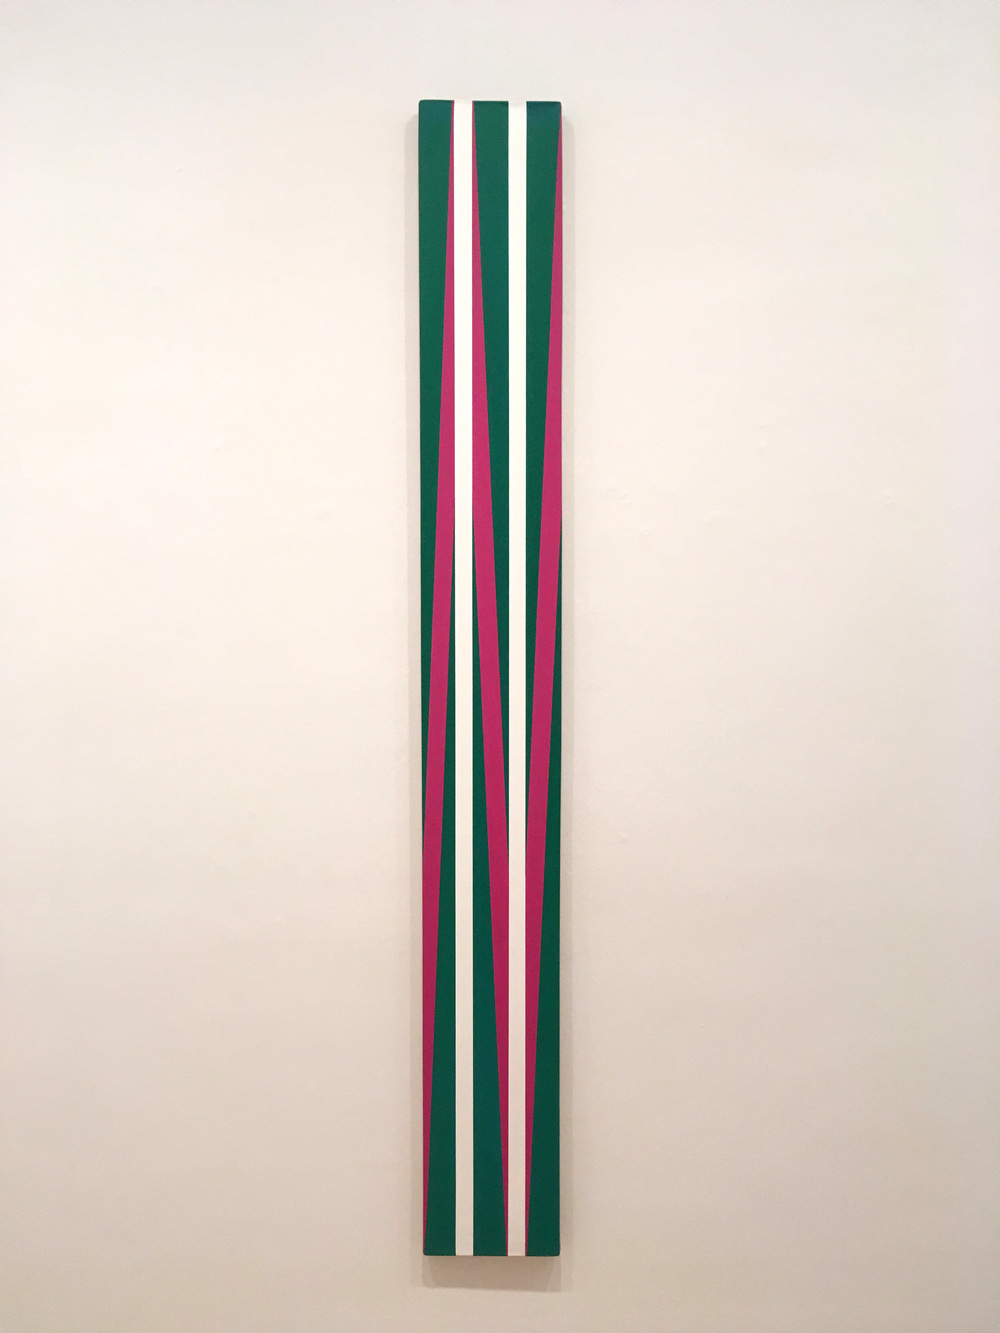 Bridget-Riley07.jpg